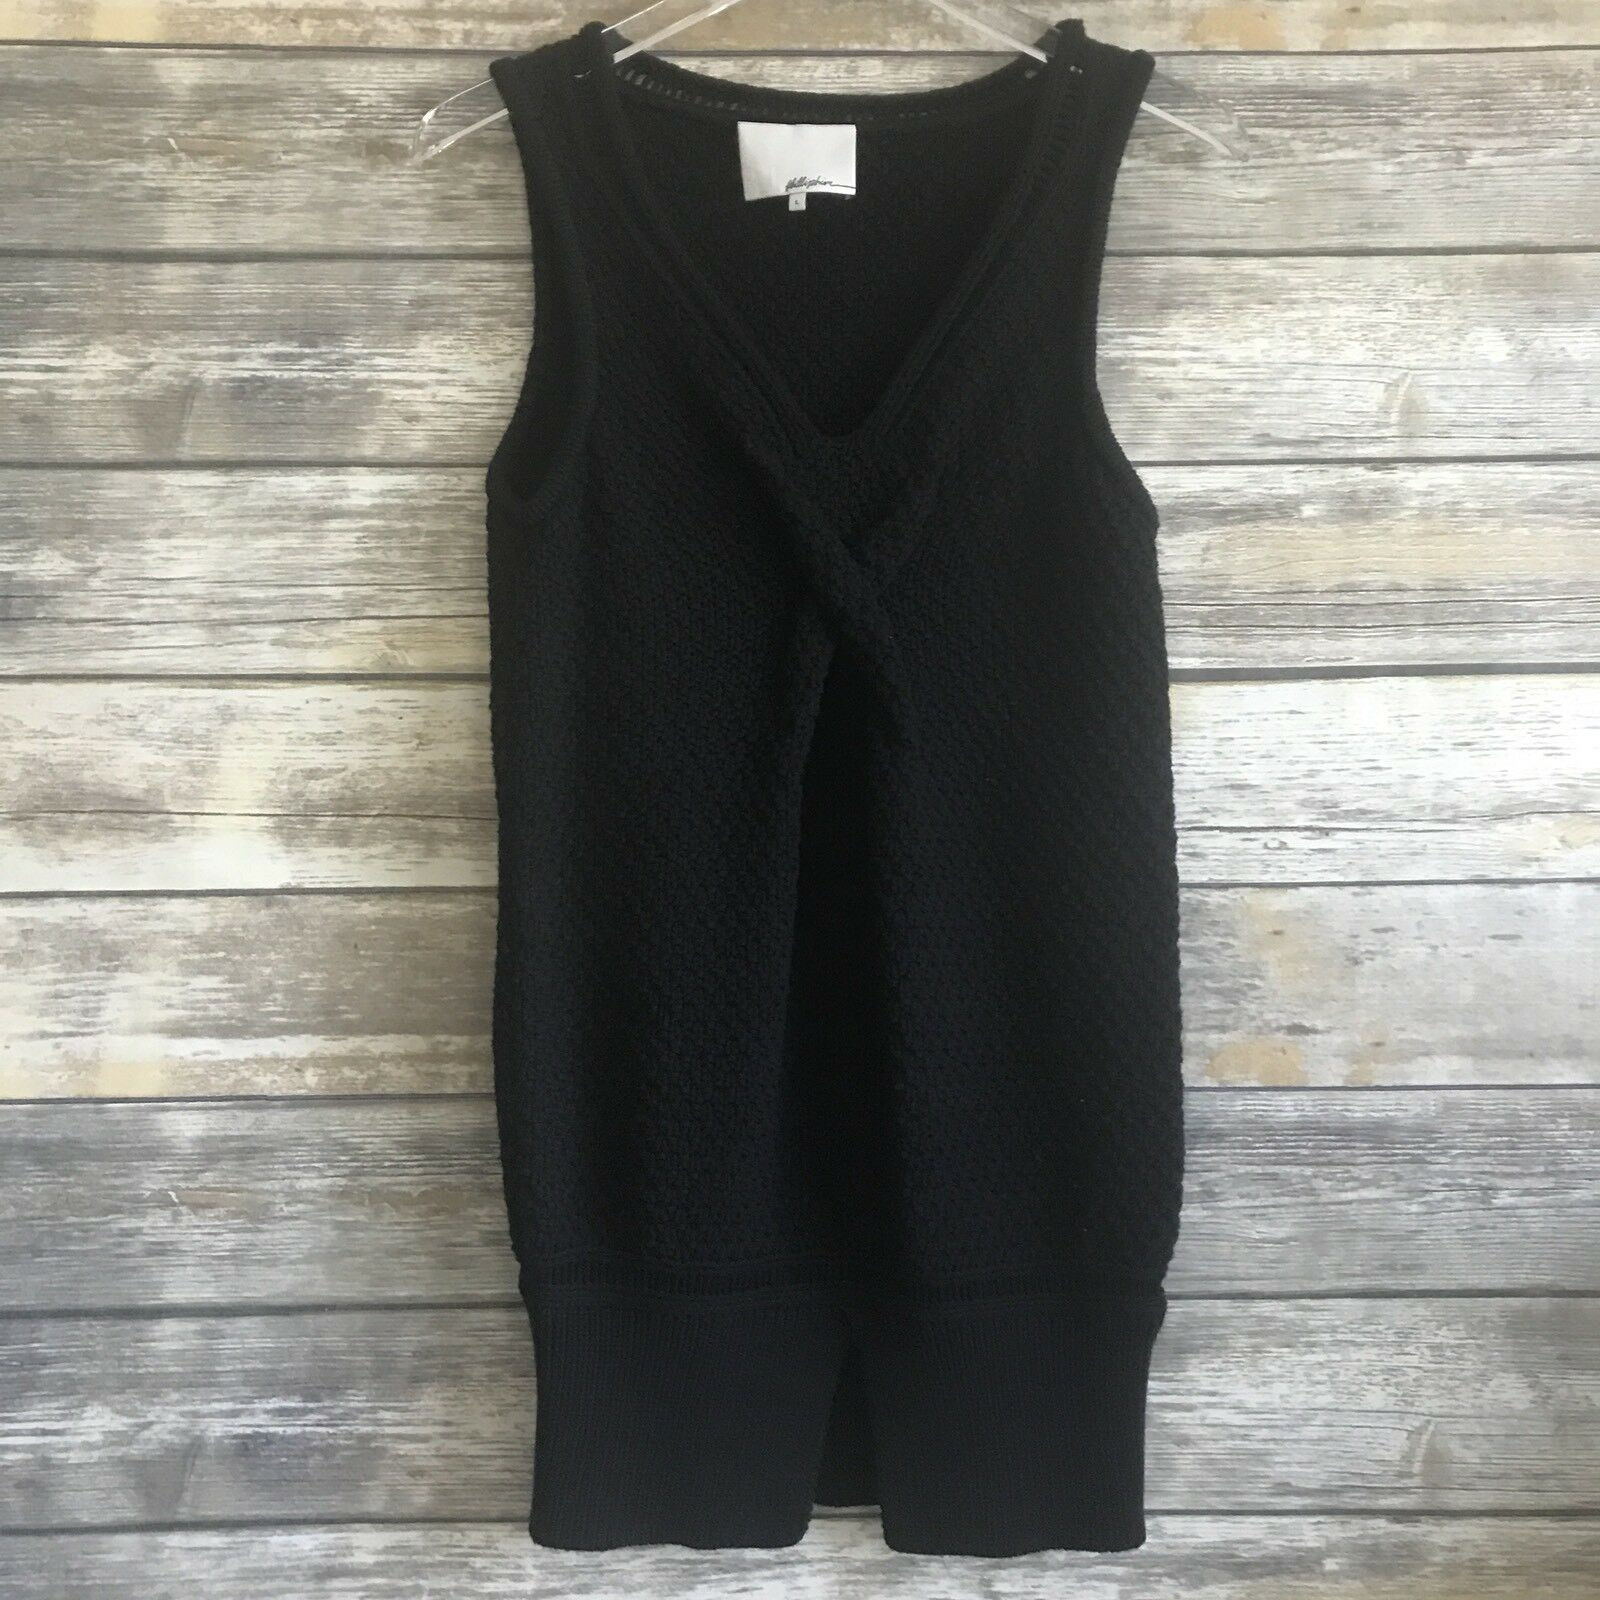 3.1 Phillips Lim Women's Navy Knit Sweater Sleeveless Tunic Top - Size L